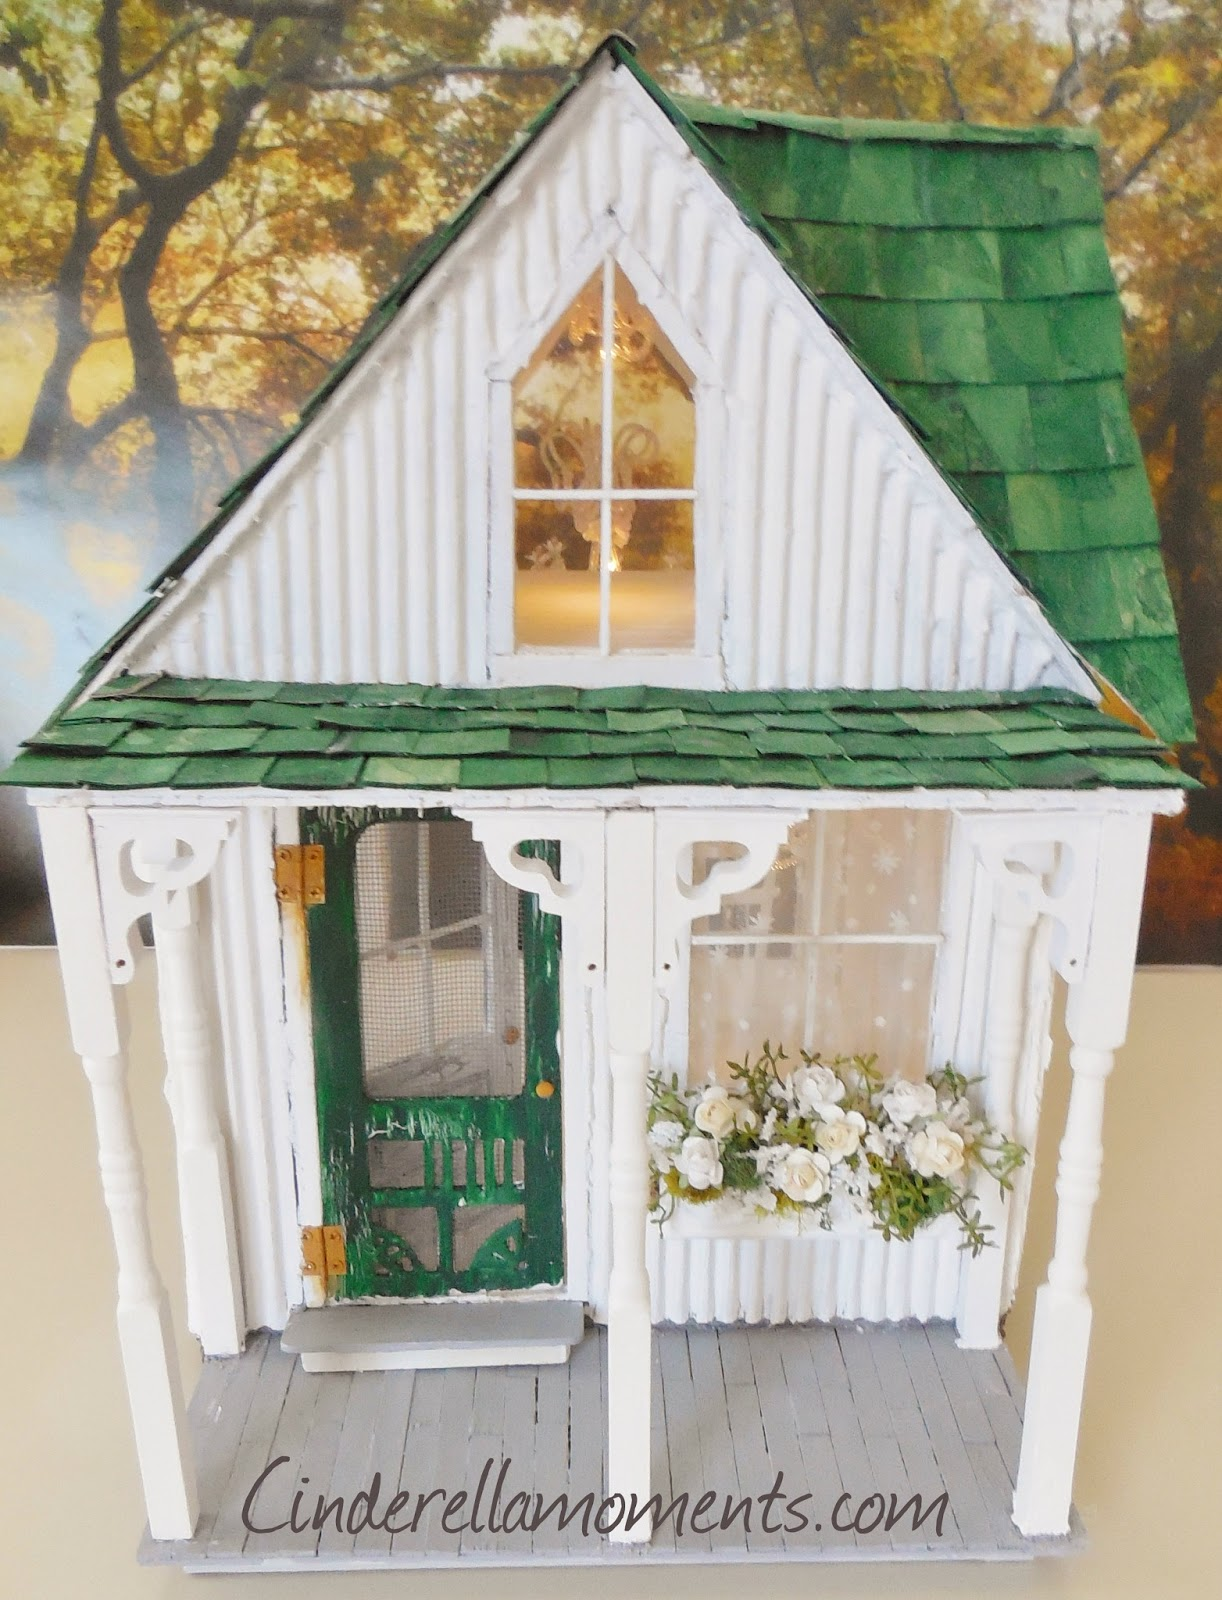 Cinderella Moments: Shabby Streamside Dollhouse & The